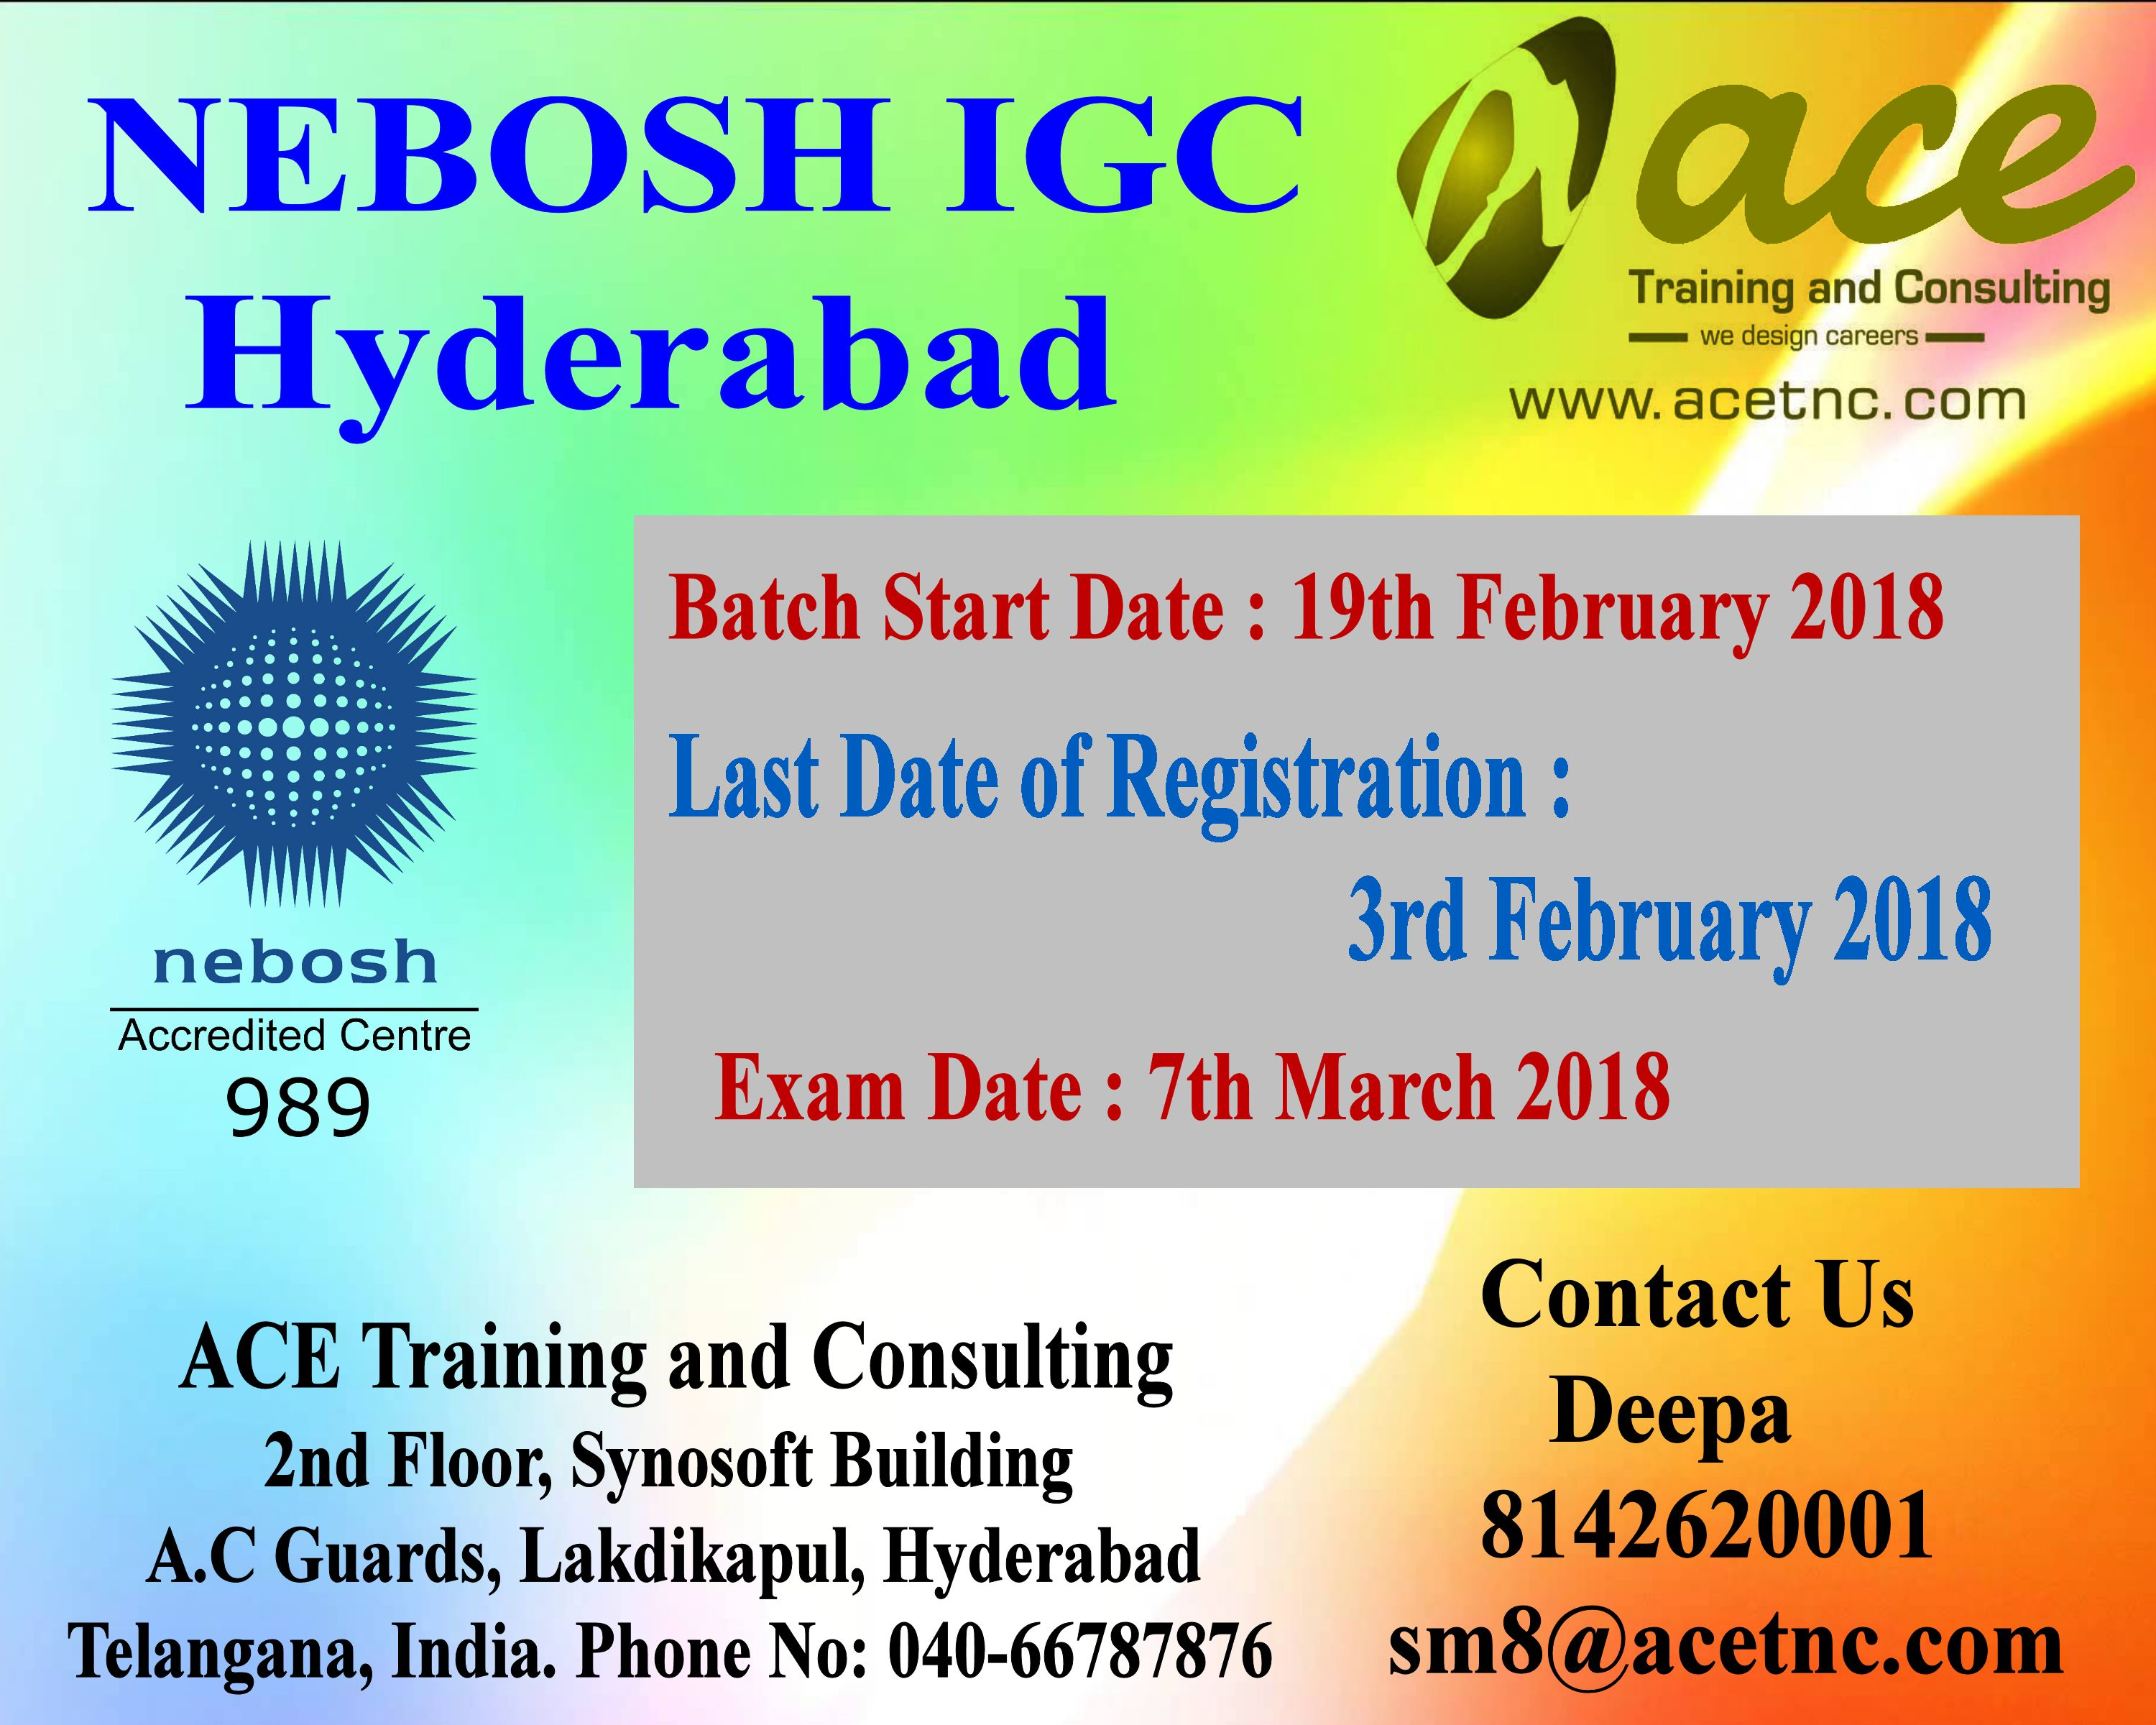 Nebosh IGC 7th March 2018 - Deepa